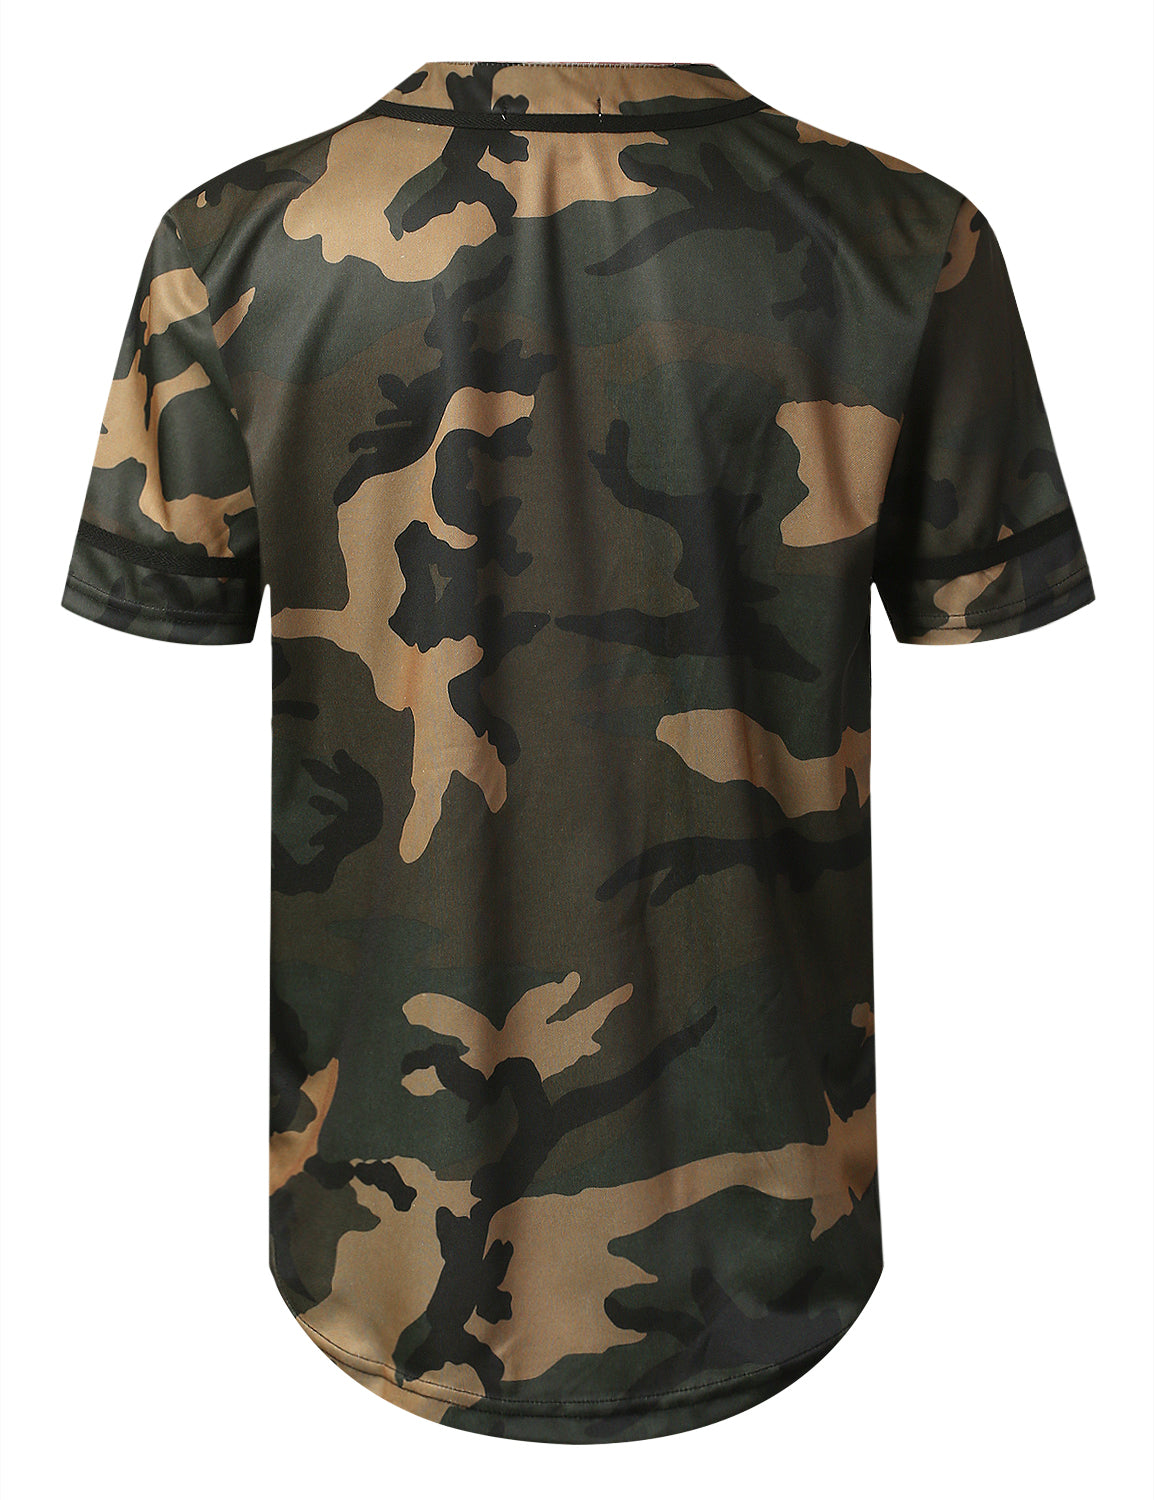 GREEN Camo Baseball Jersey T-shirt - URBANCREWS